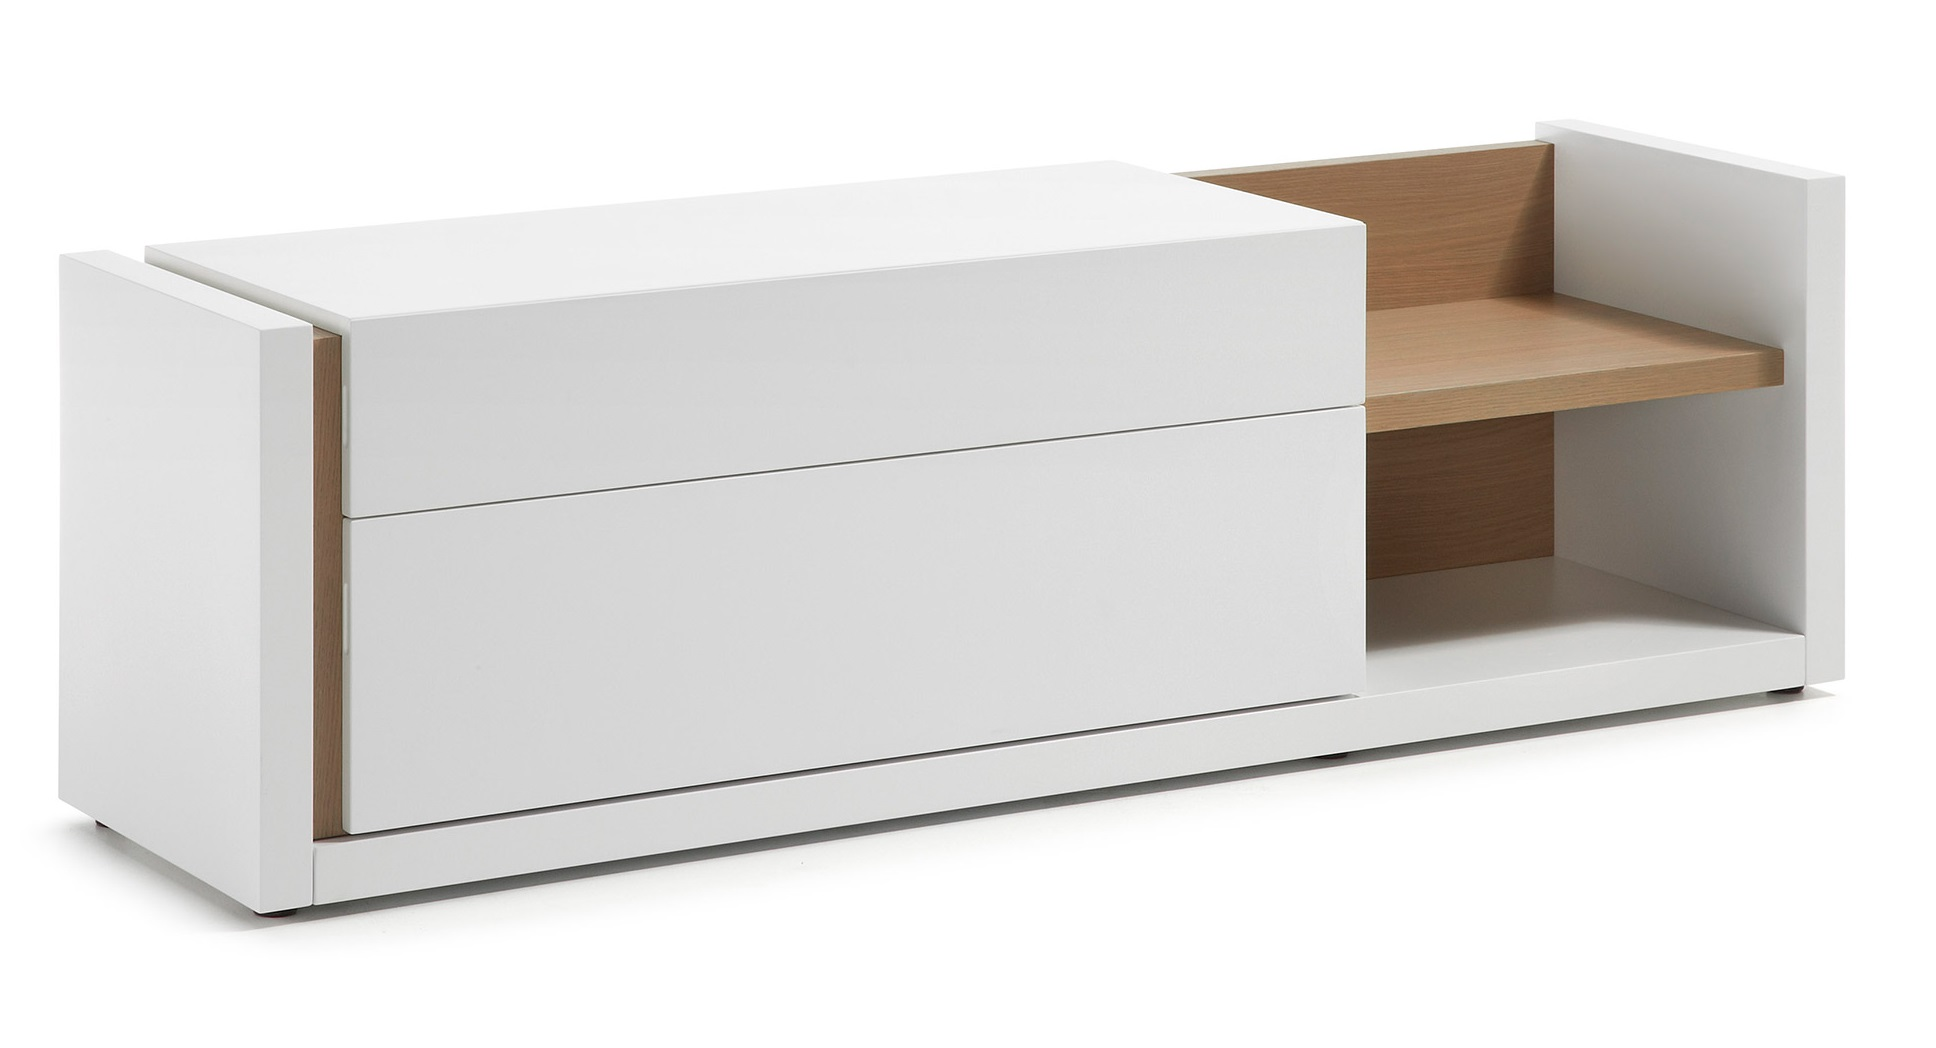 Mueble TV nordic blanco mate roble